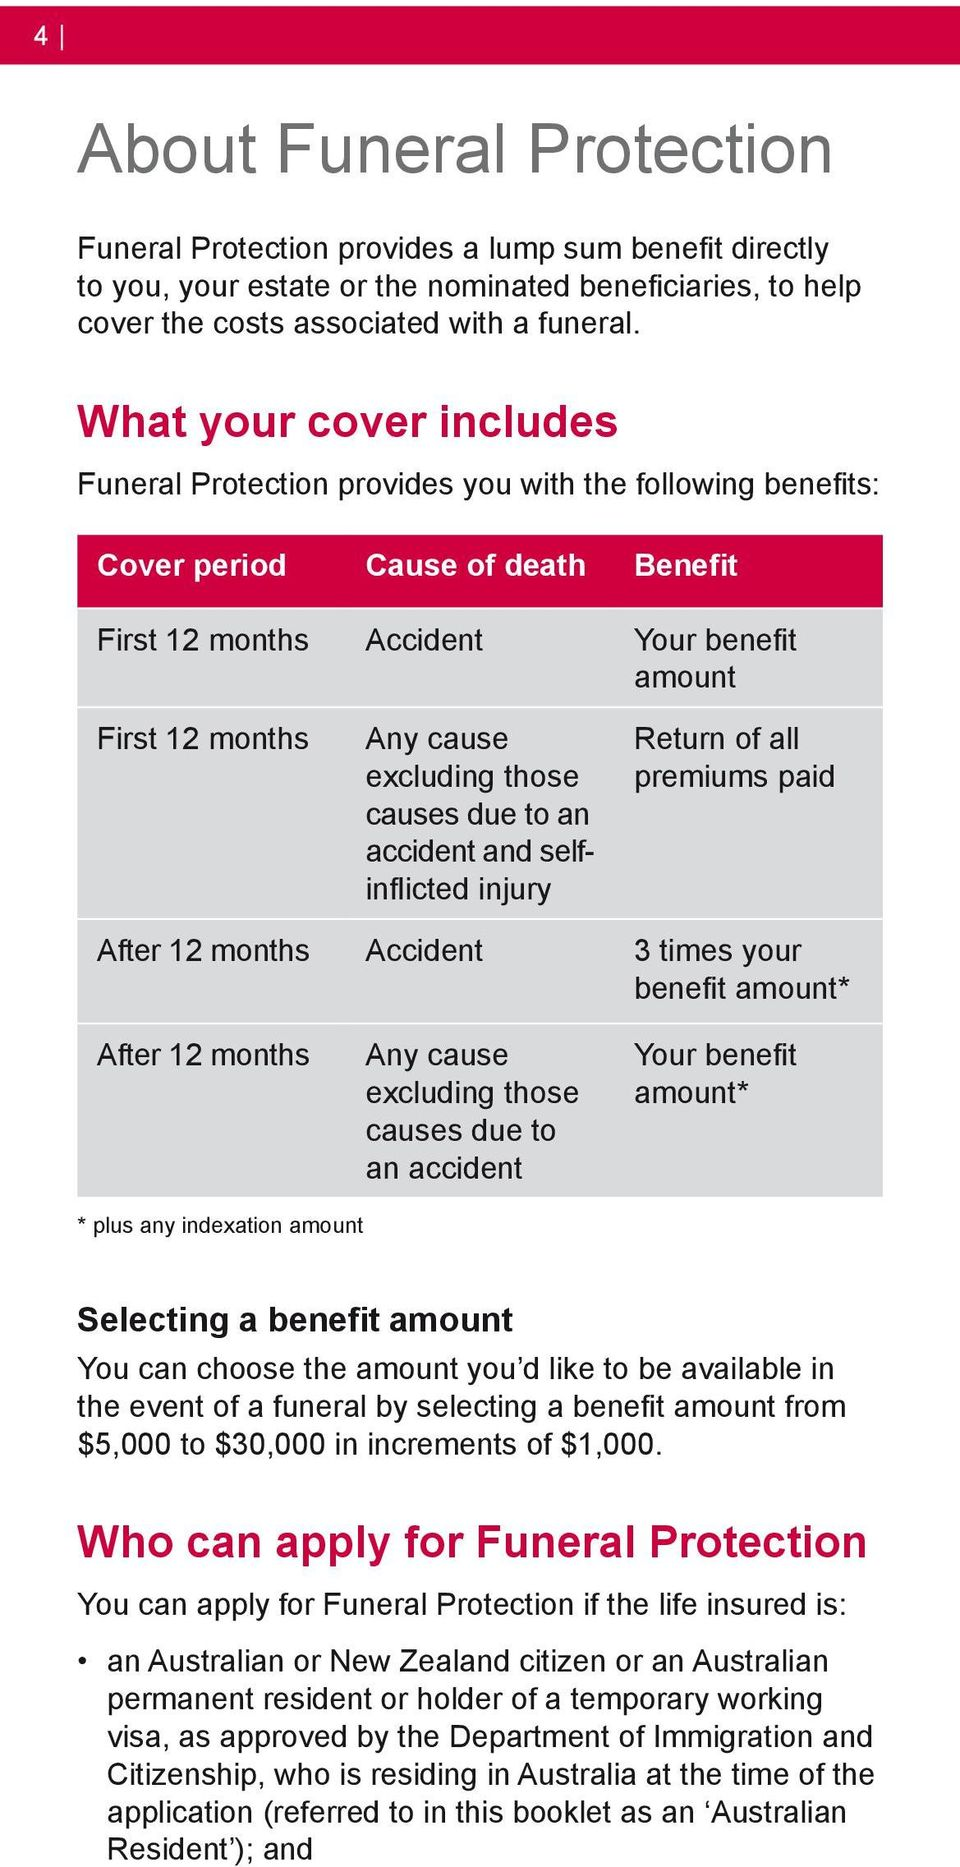 excluding those causes due to an accident and selfinflicted injury Return of all premiums paid After 12 months Accident 3 times your benefit amount* After 12 months Any cause excluding those causes